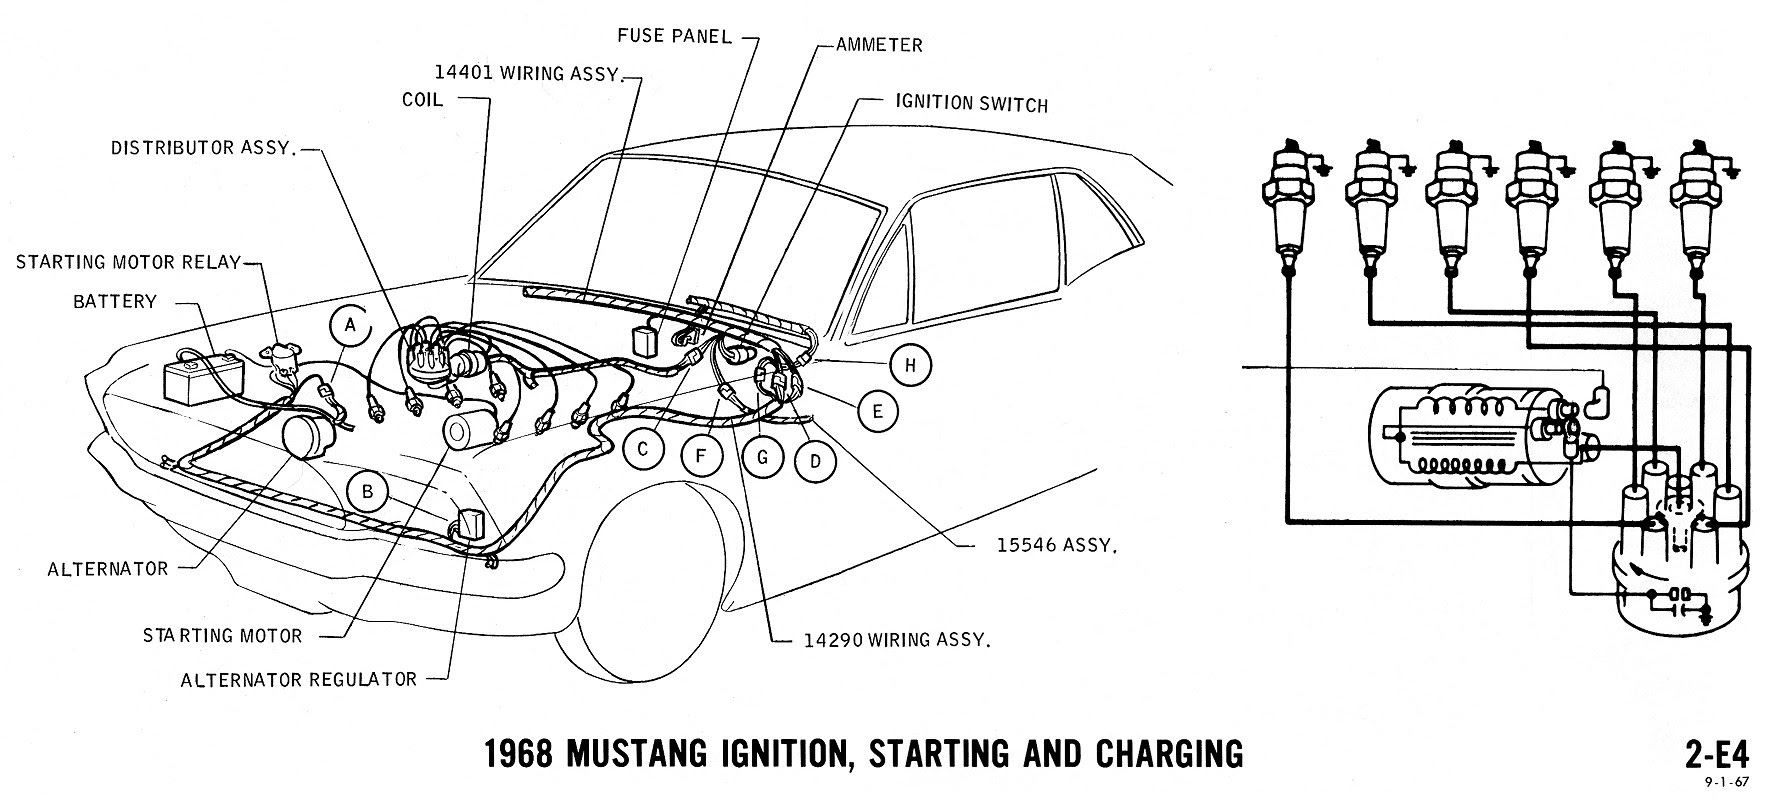 1968 Mustang Engine Wiring Wiring Diagrams Collection Collection Chatteriedelavalleedufelin Fr